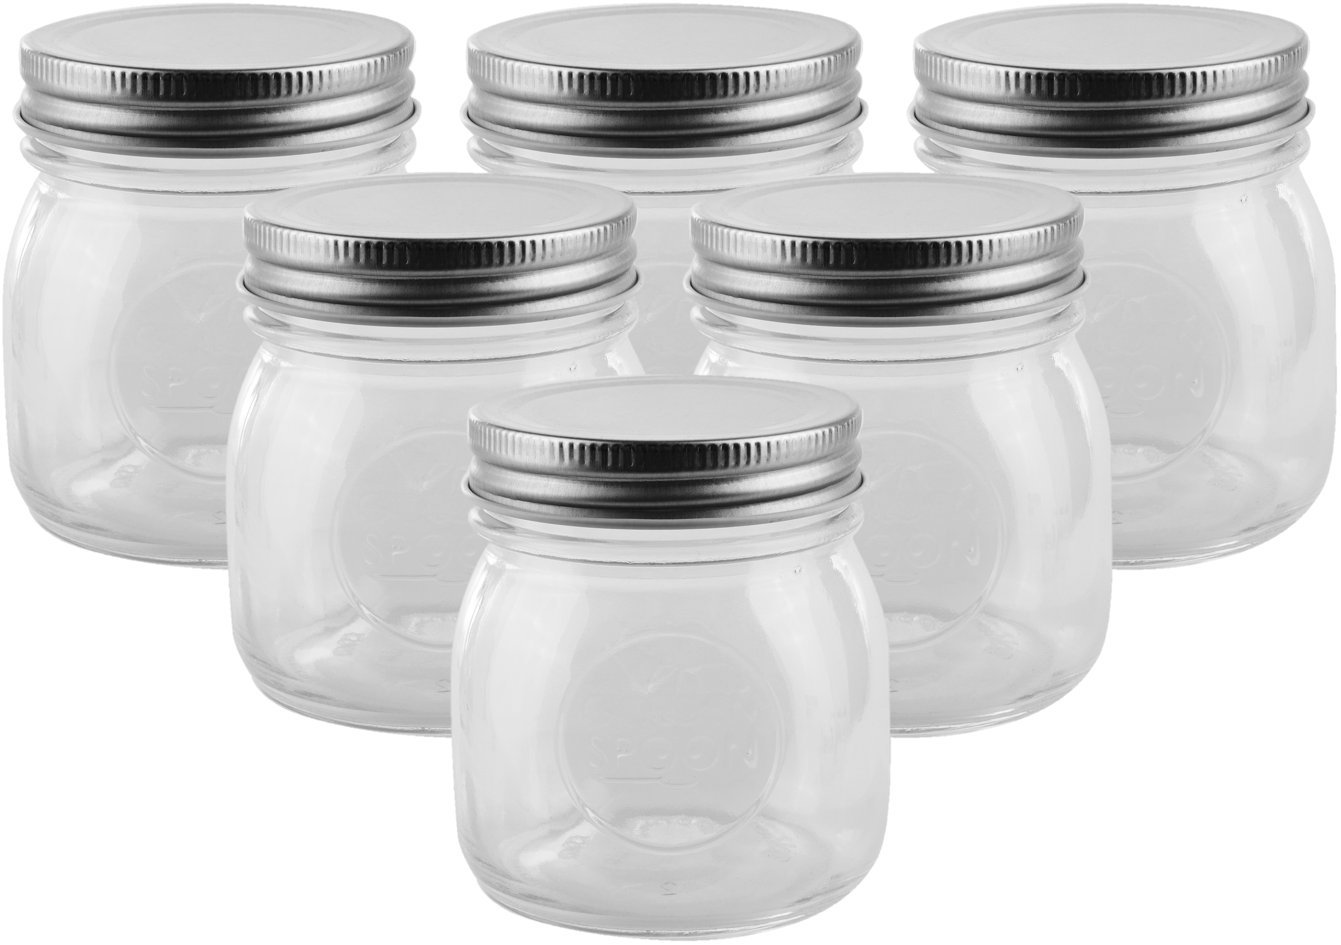 Golden Spoon Mason Jars, With Regular Lids, and Lids for Drinking, Dishwasher Safe, BPA Free, (Set of 6) (10 oz) by Golden Spoon